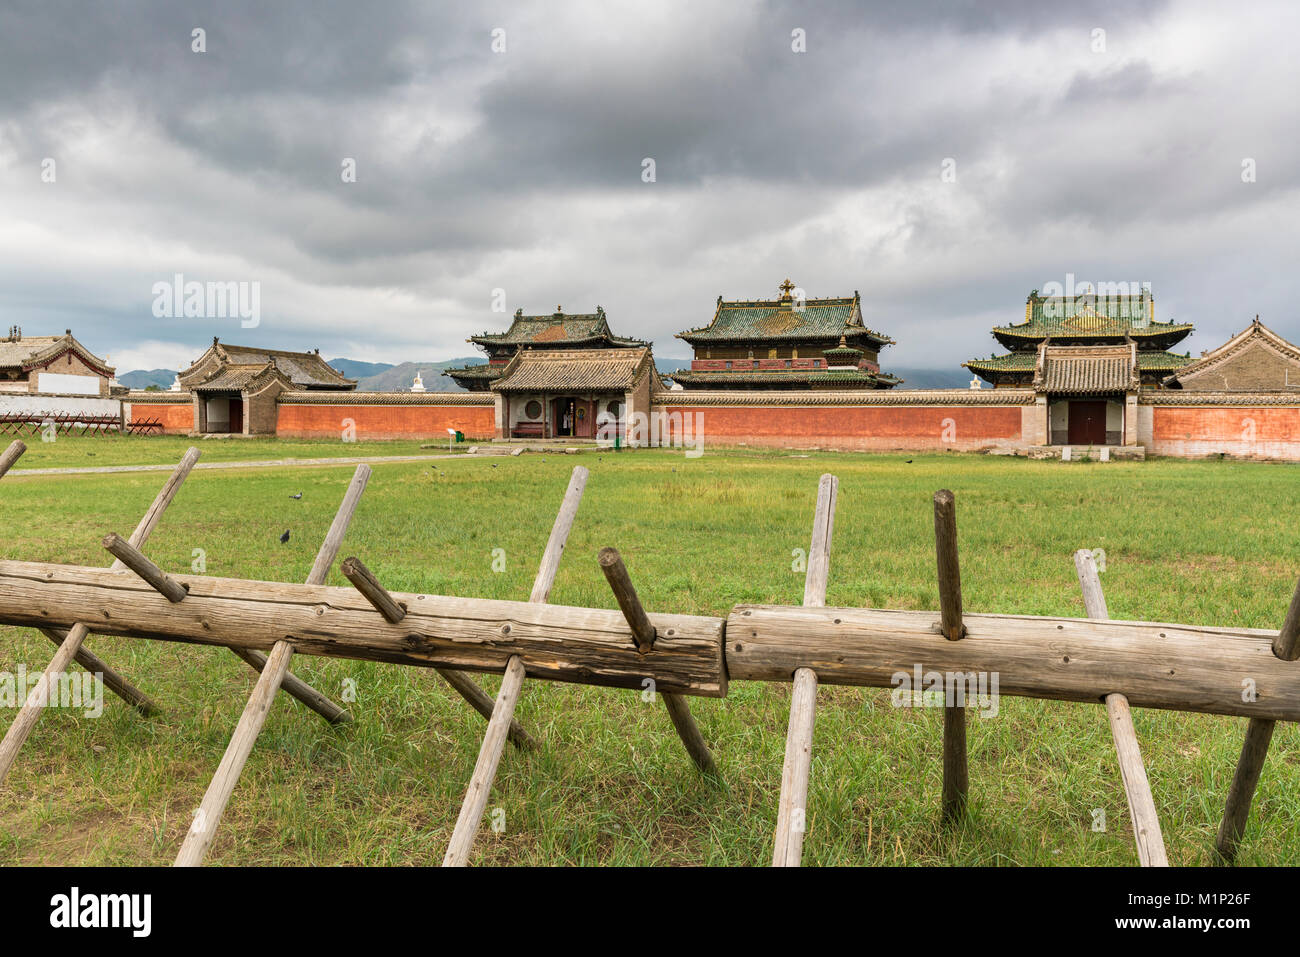 Temples in Erdene Zuu Monastery, Harhorin, South Hangay province, Mongolia, Central Asia, Asia - Stock Image